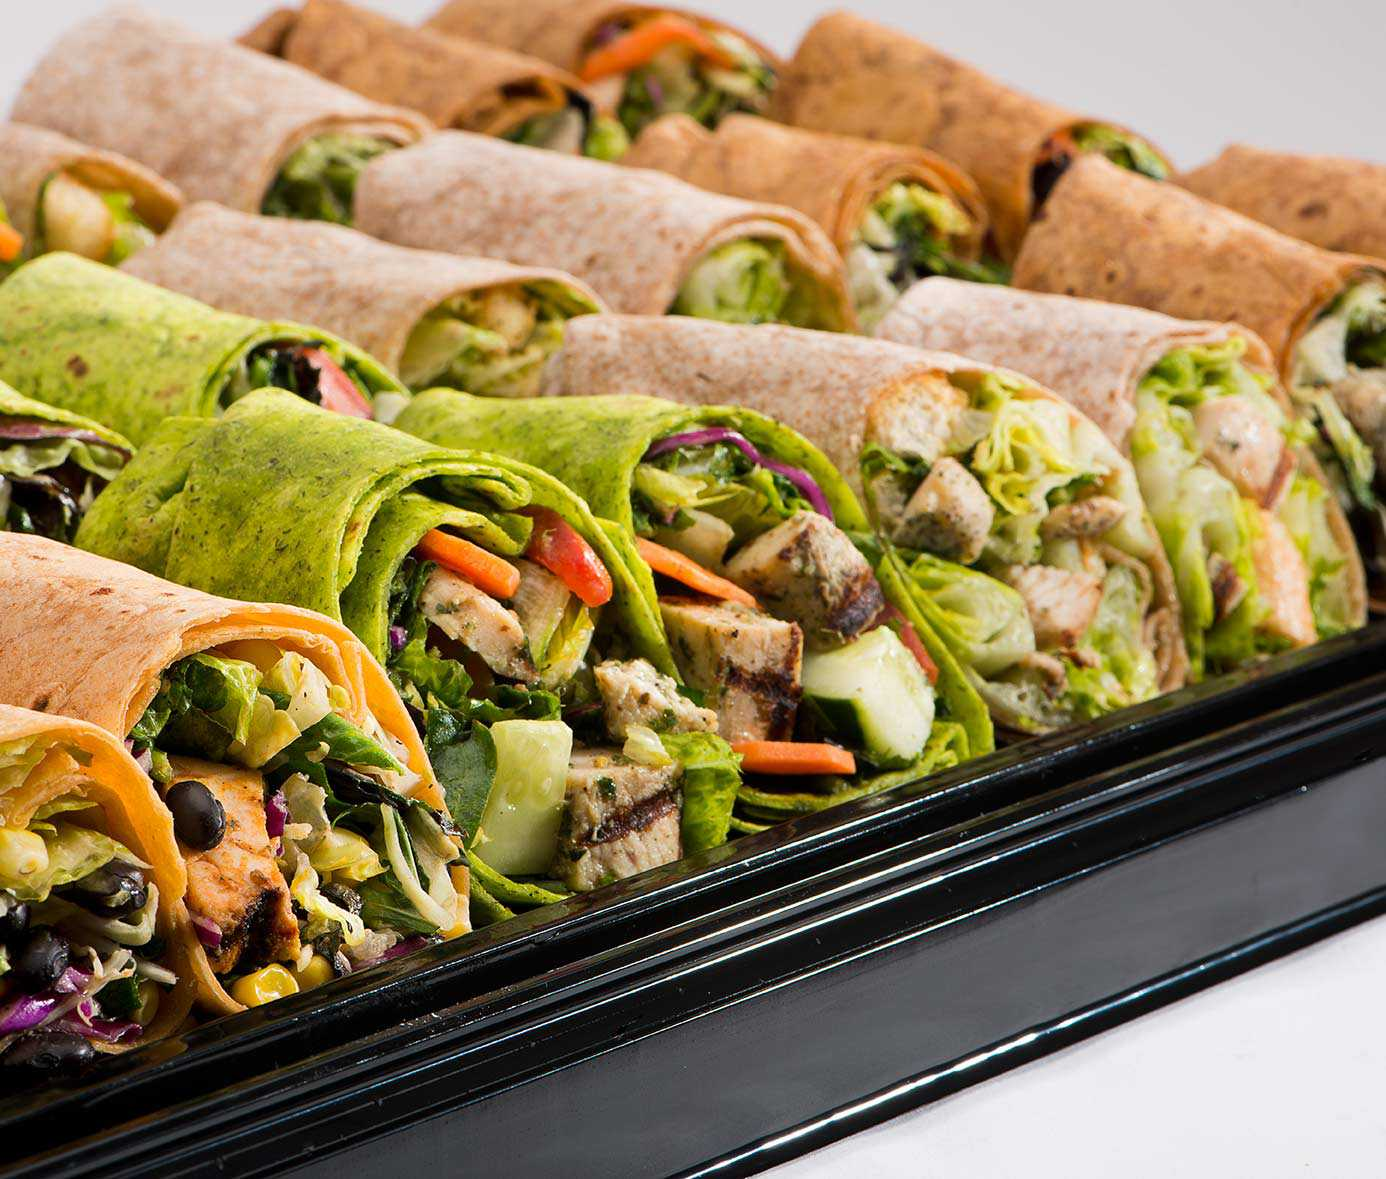 xcatering-wrap-tray.jpg.pagespeed.ic